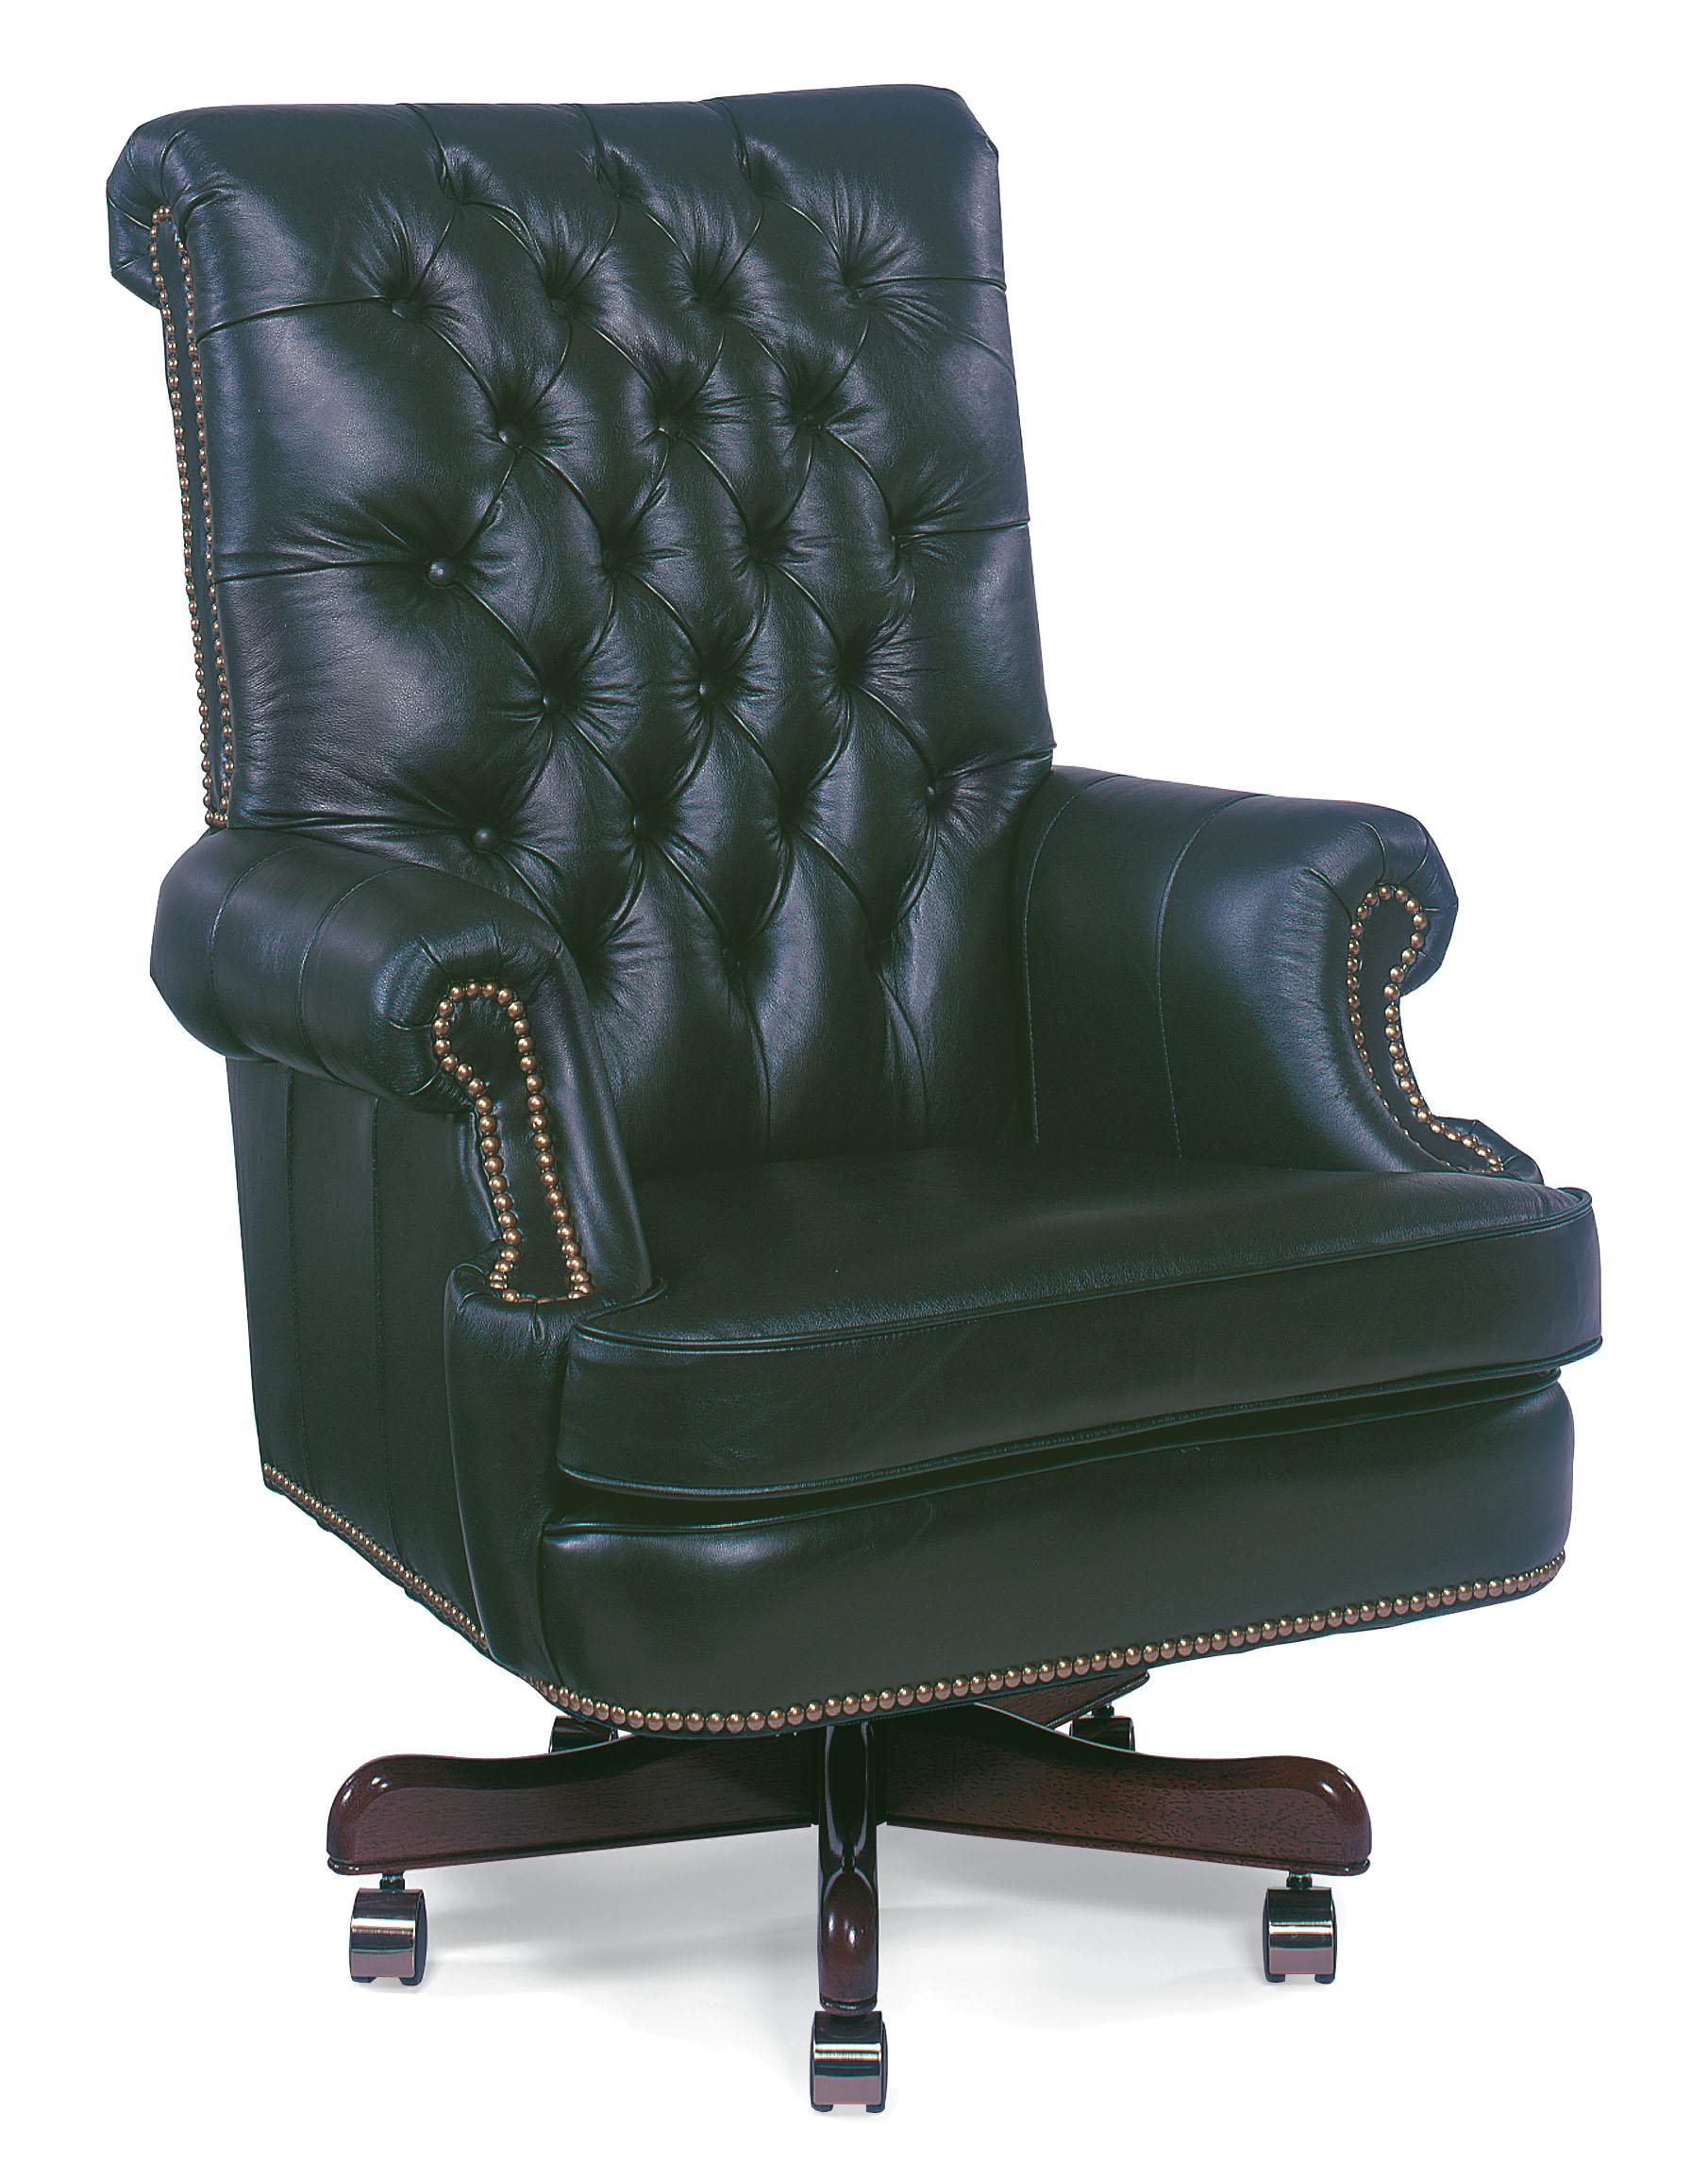 Fairfield Office Furnishings Executive Swivel Chair - Item Number: 1096-35